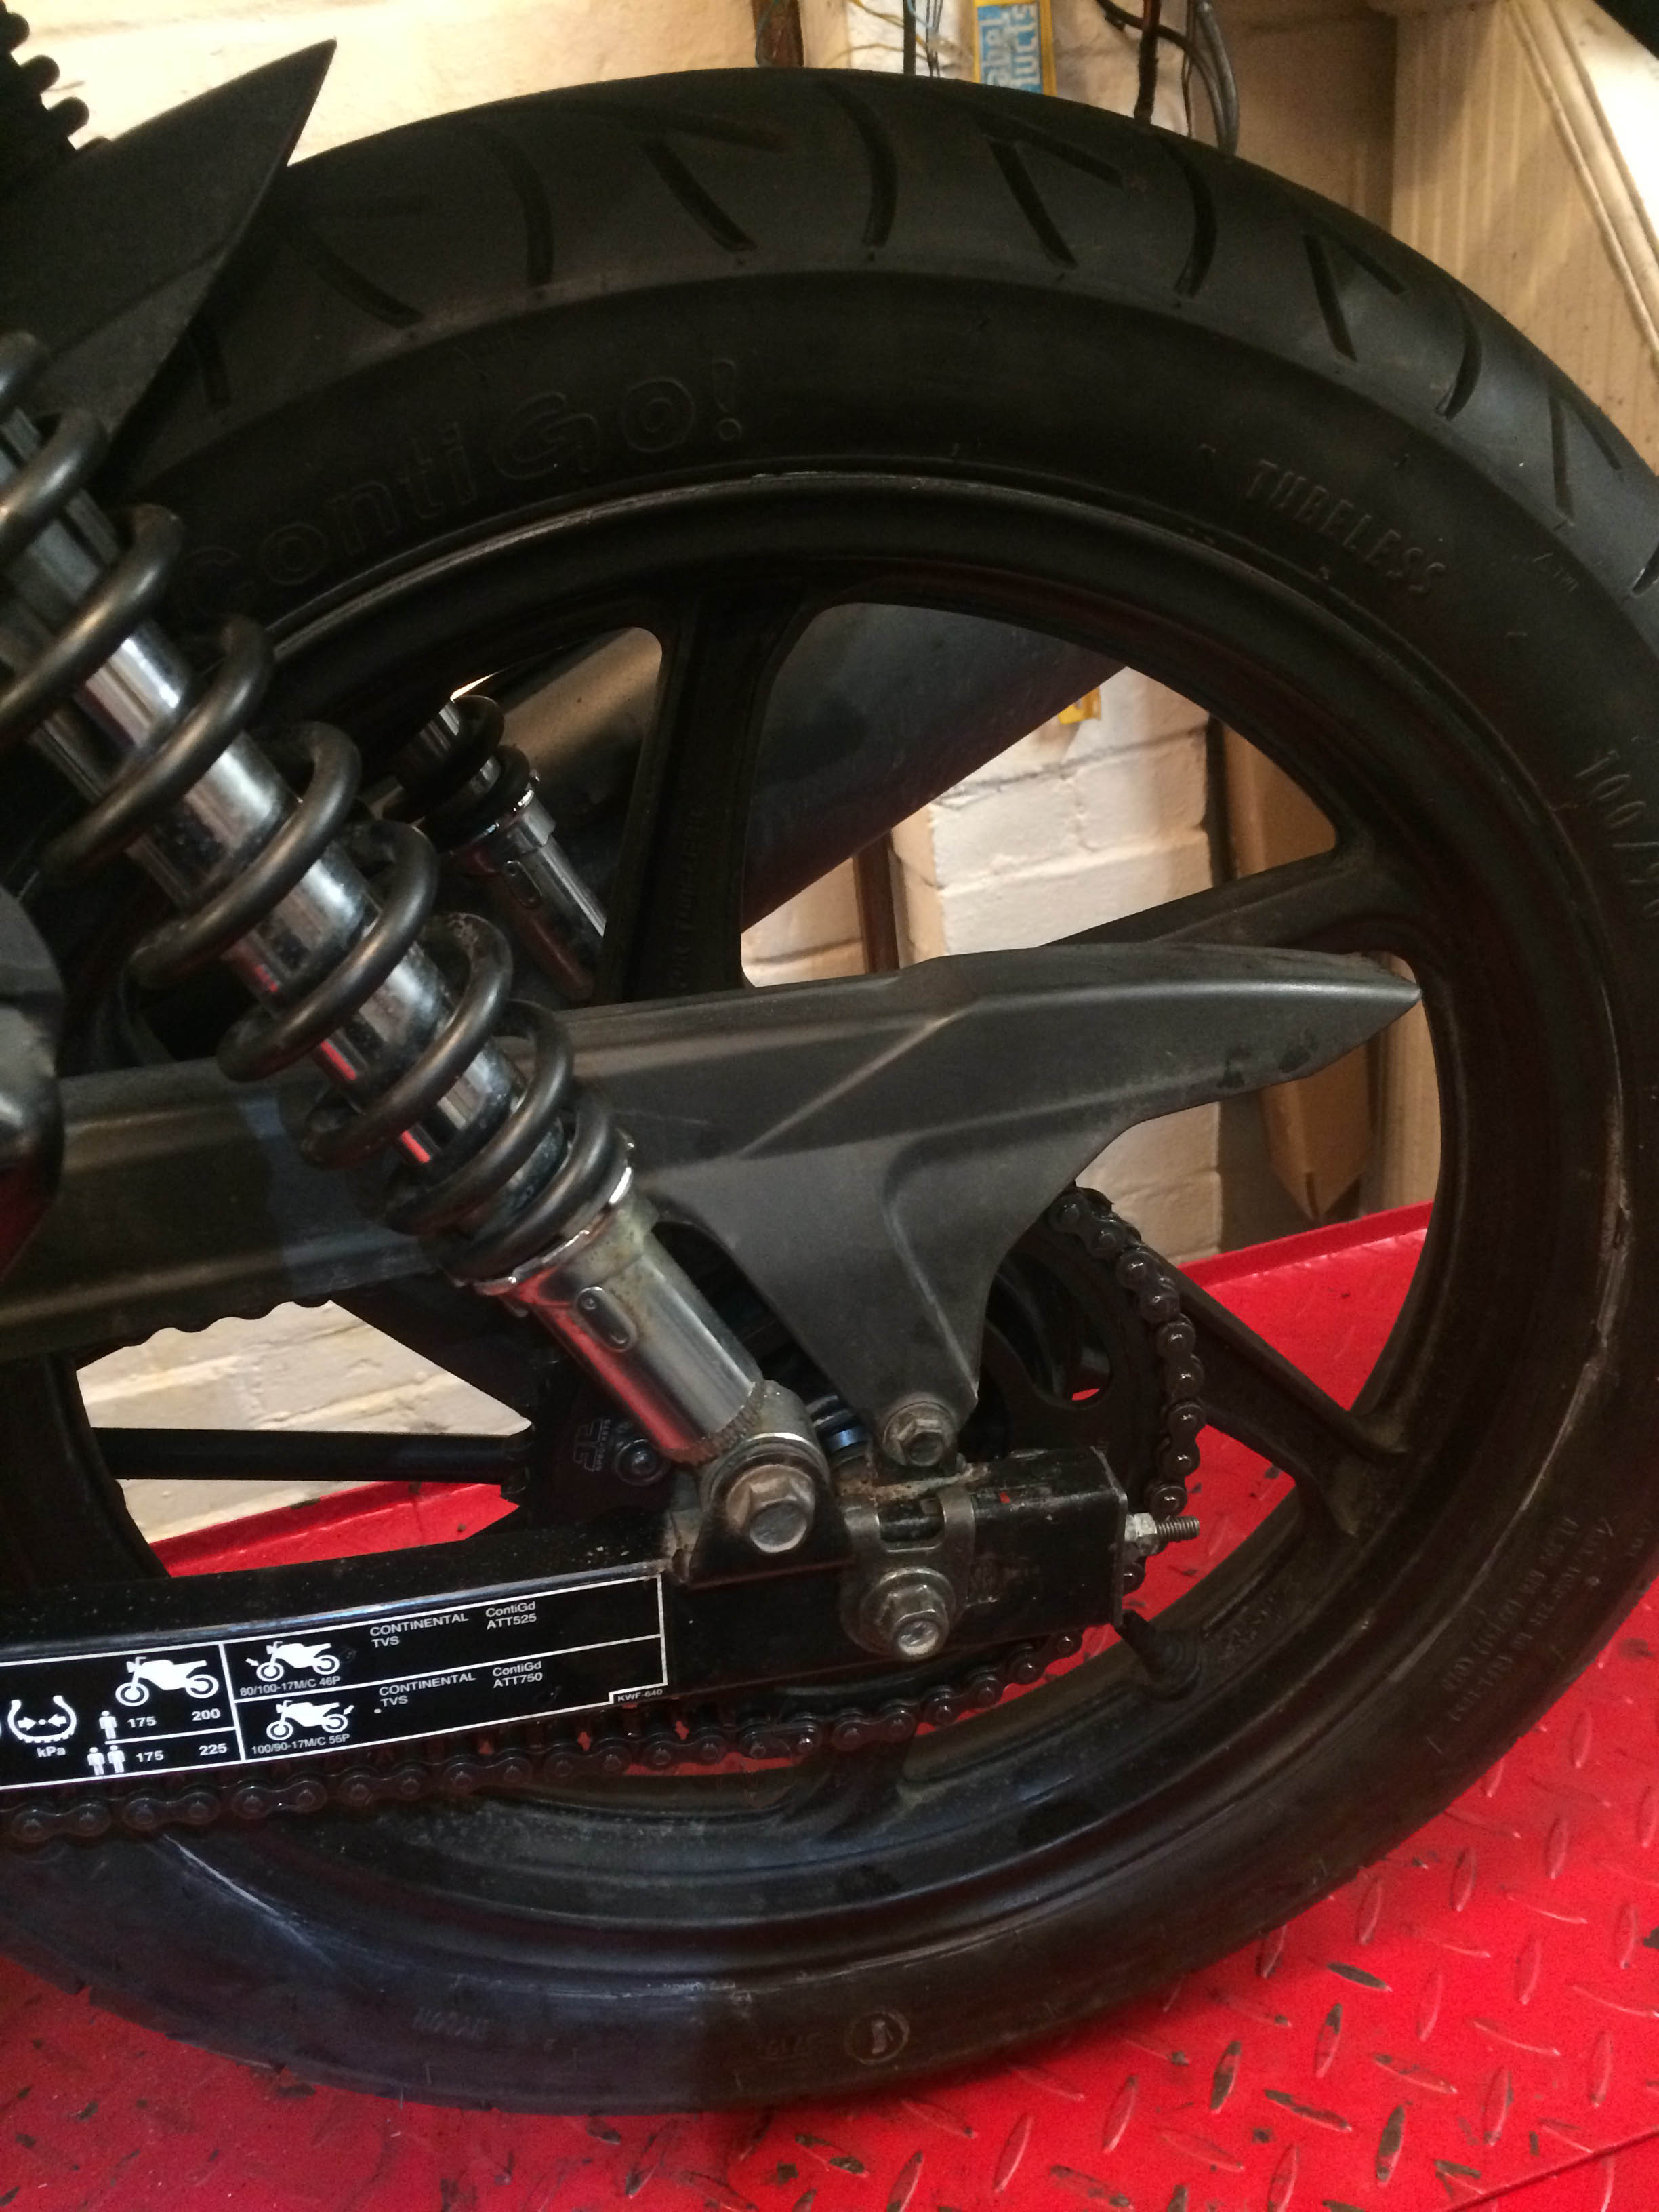 HondaCBF125 Red 2011 rear wheel